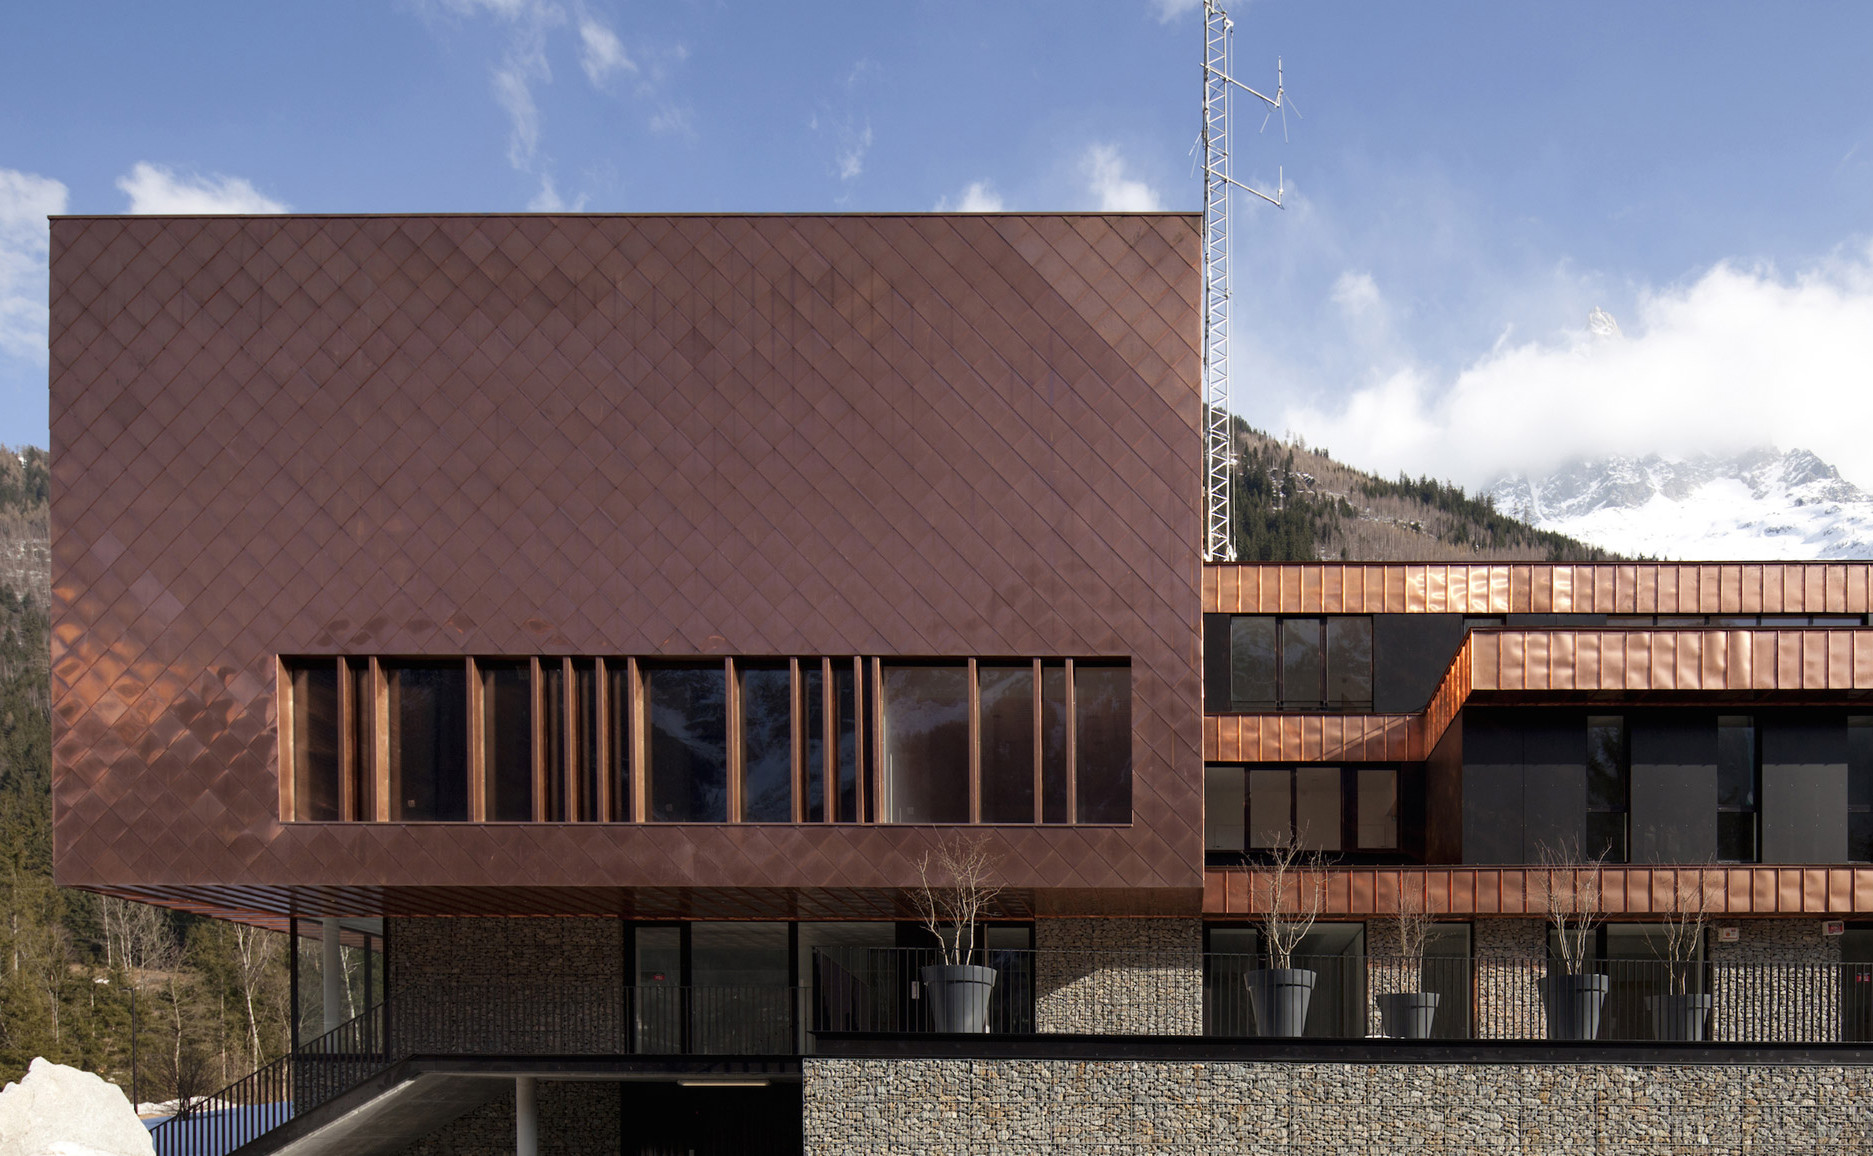 chamonix-fire-station-studio-gardoni-architectures-mont-blanc-france-copper_dezeen_2364_col_13